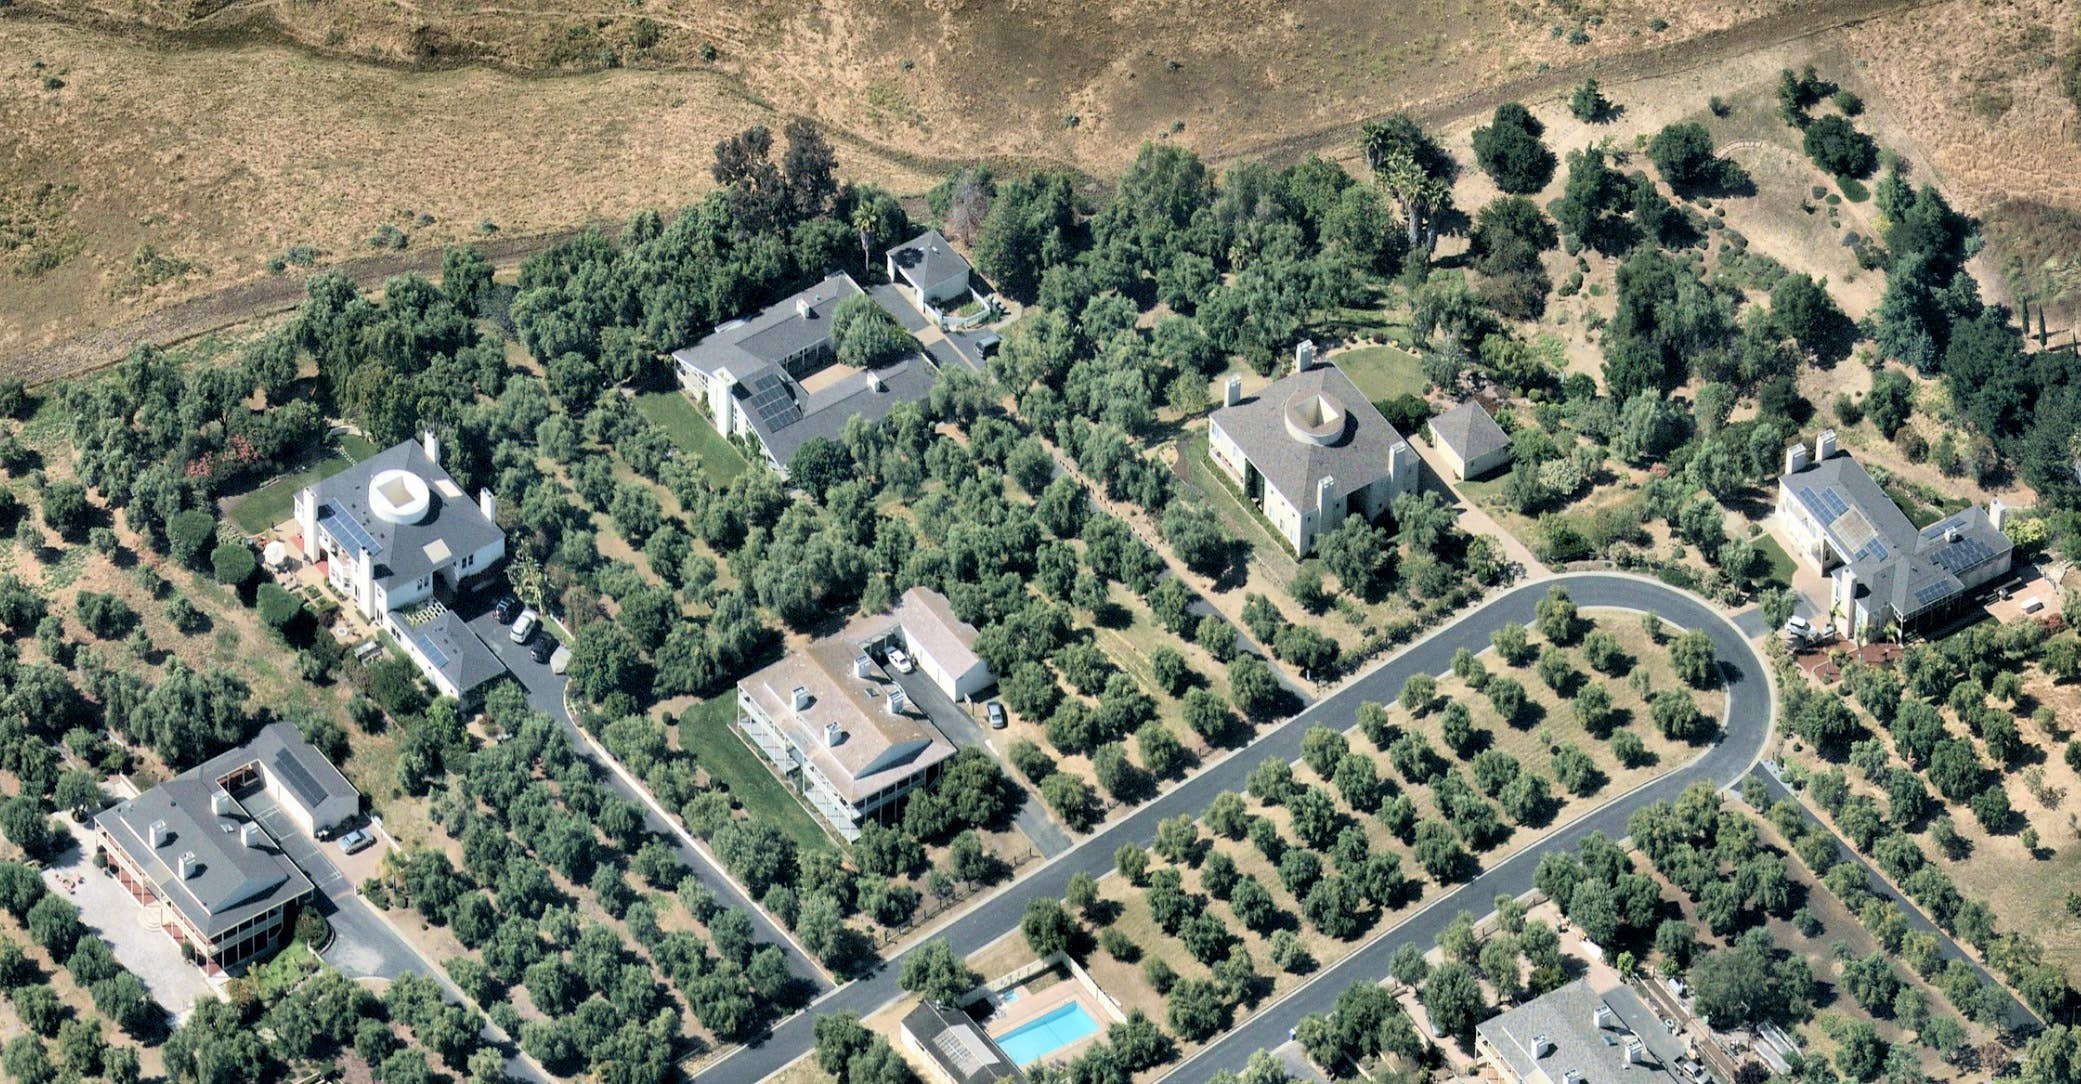 Aerial view, high-end solar homes, Milpitas CA -- 2 June 2019